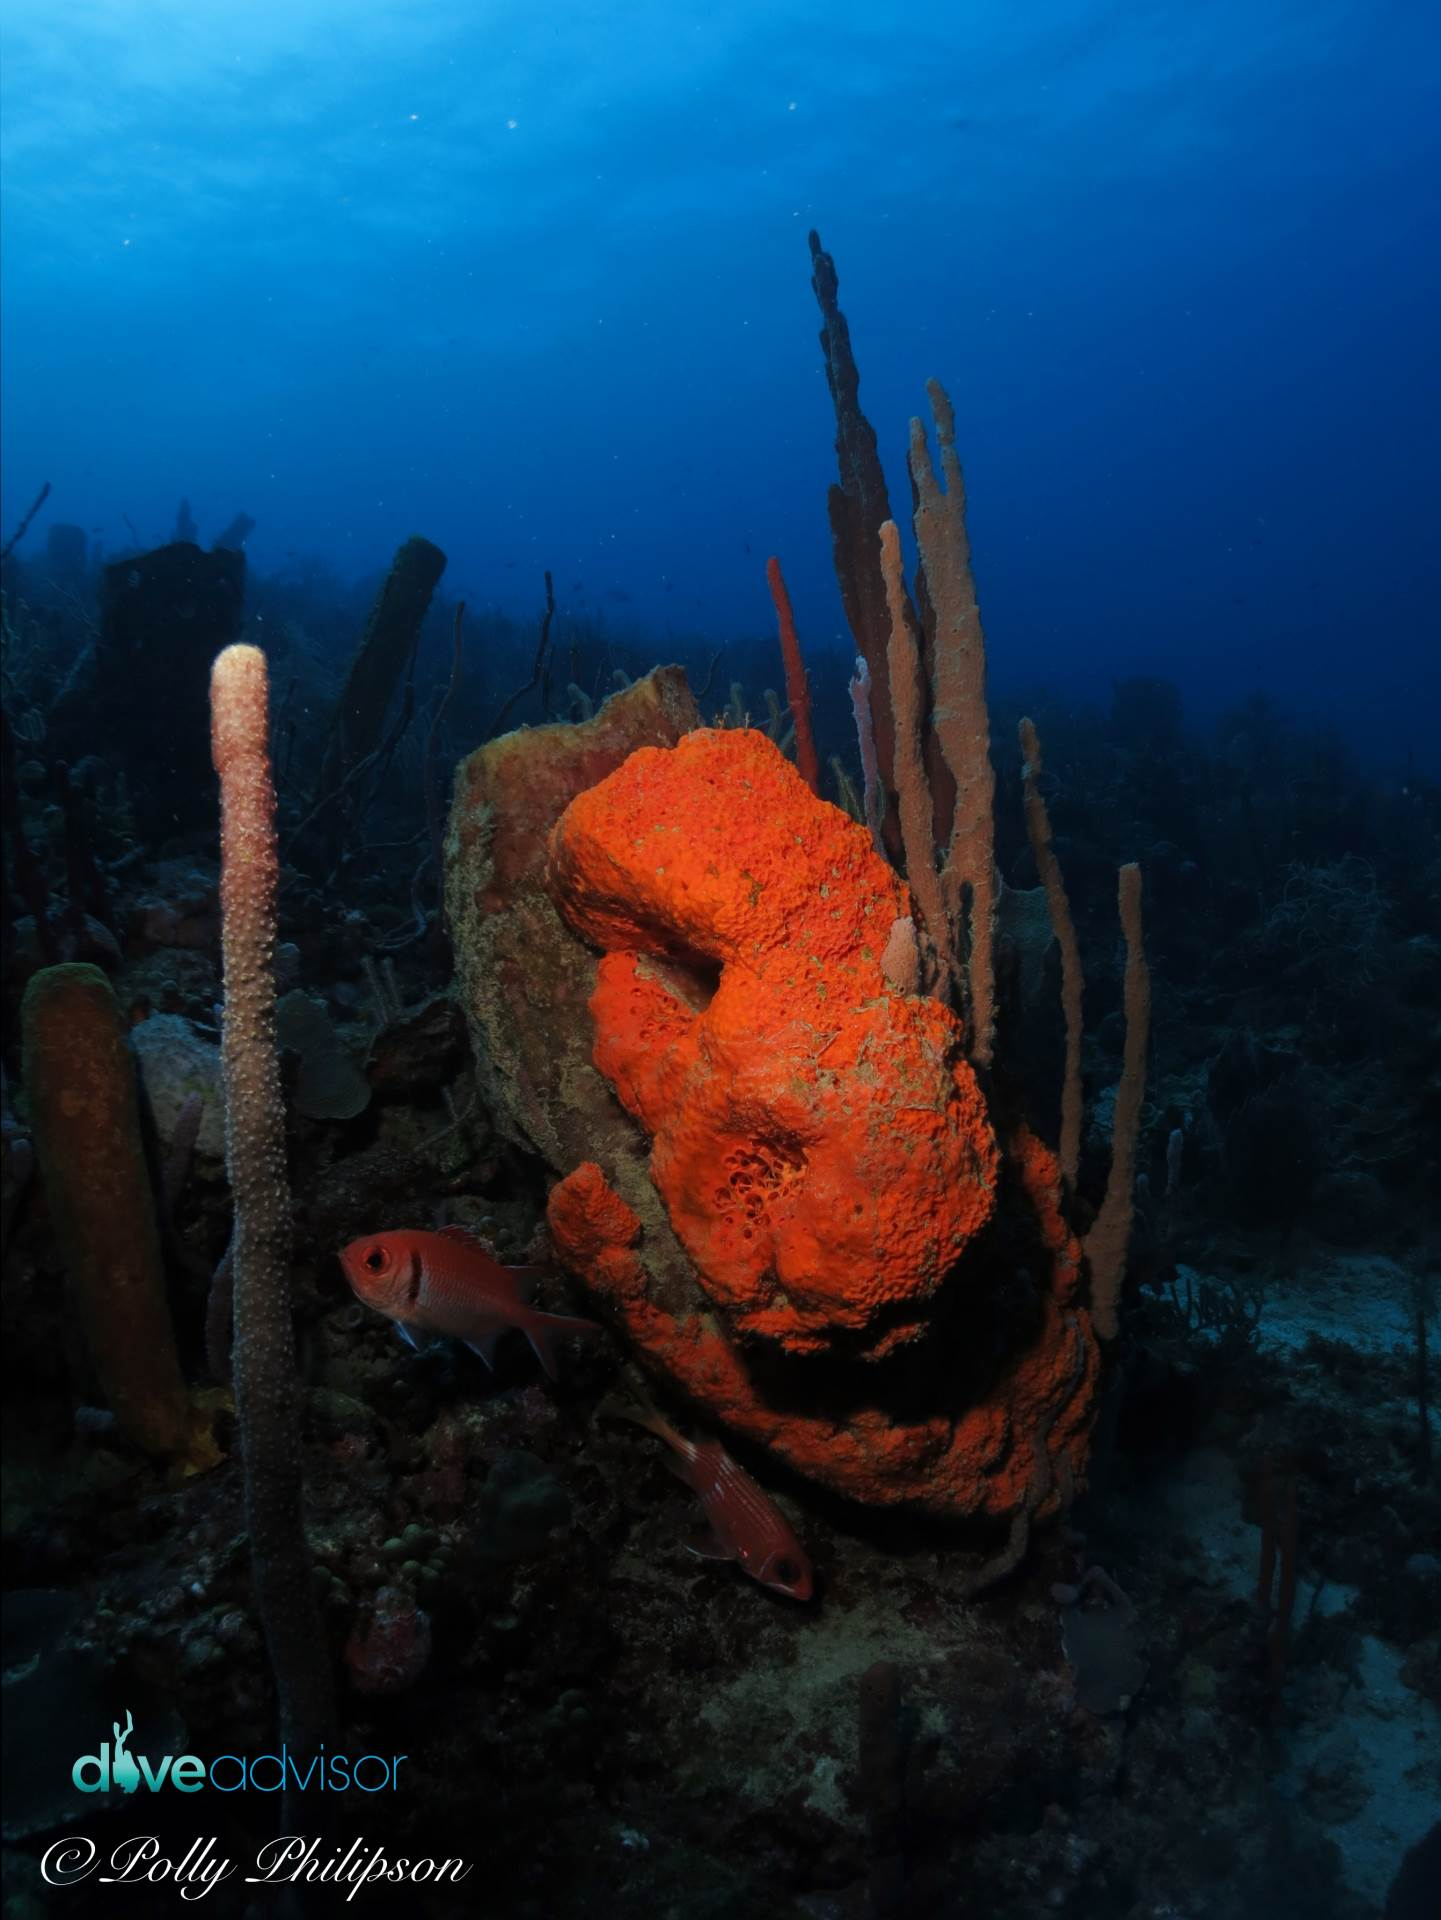 Huge Sponges Dominate the Reef